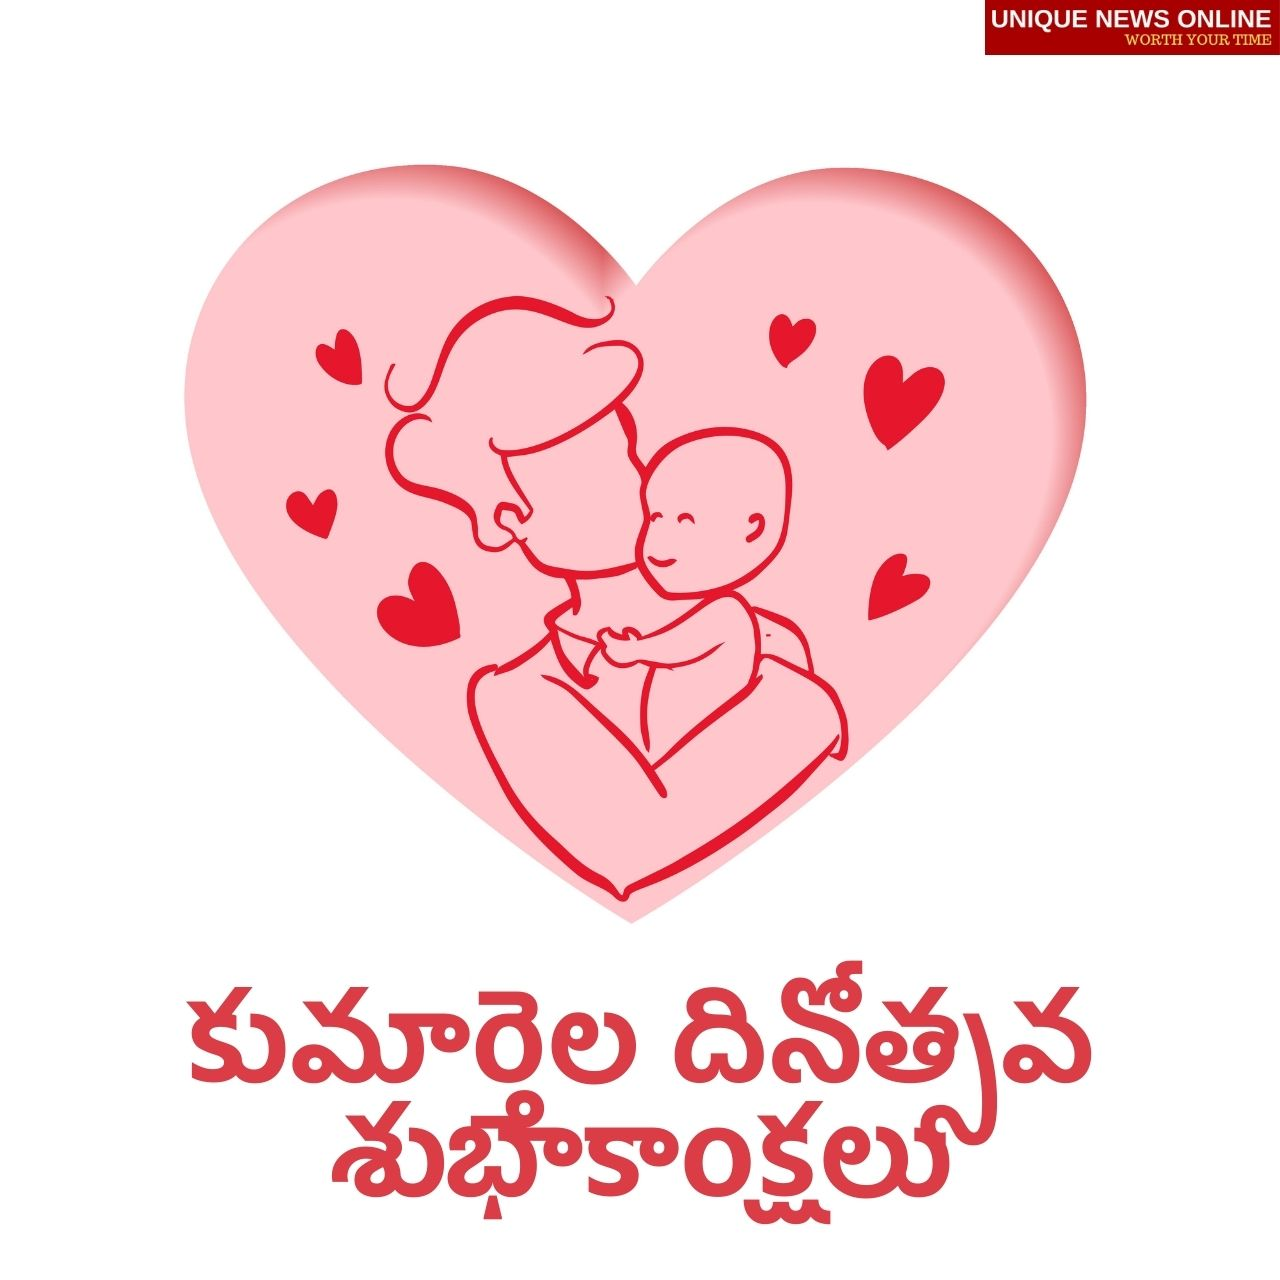 Happy Daughters Day 2021 Telugu Wishes, Greetings, Messages, Shayari, Quotes, and HD Images to Share